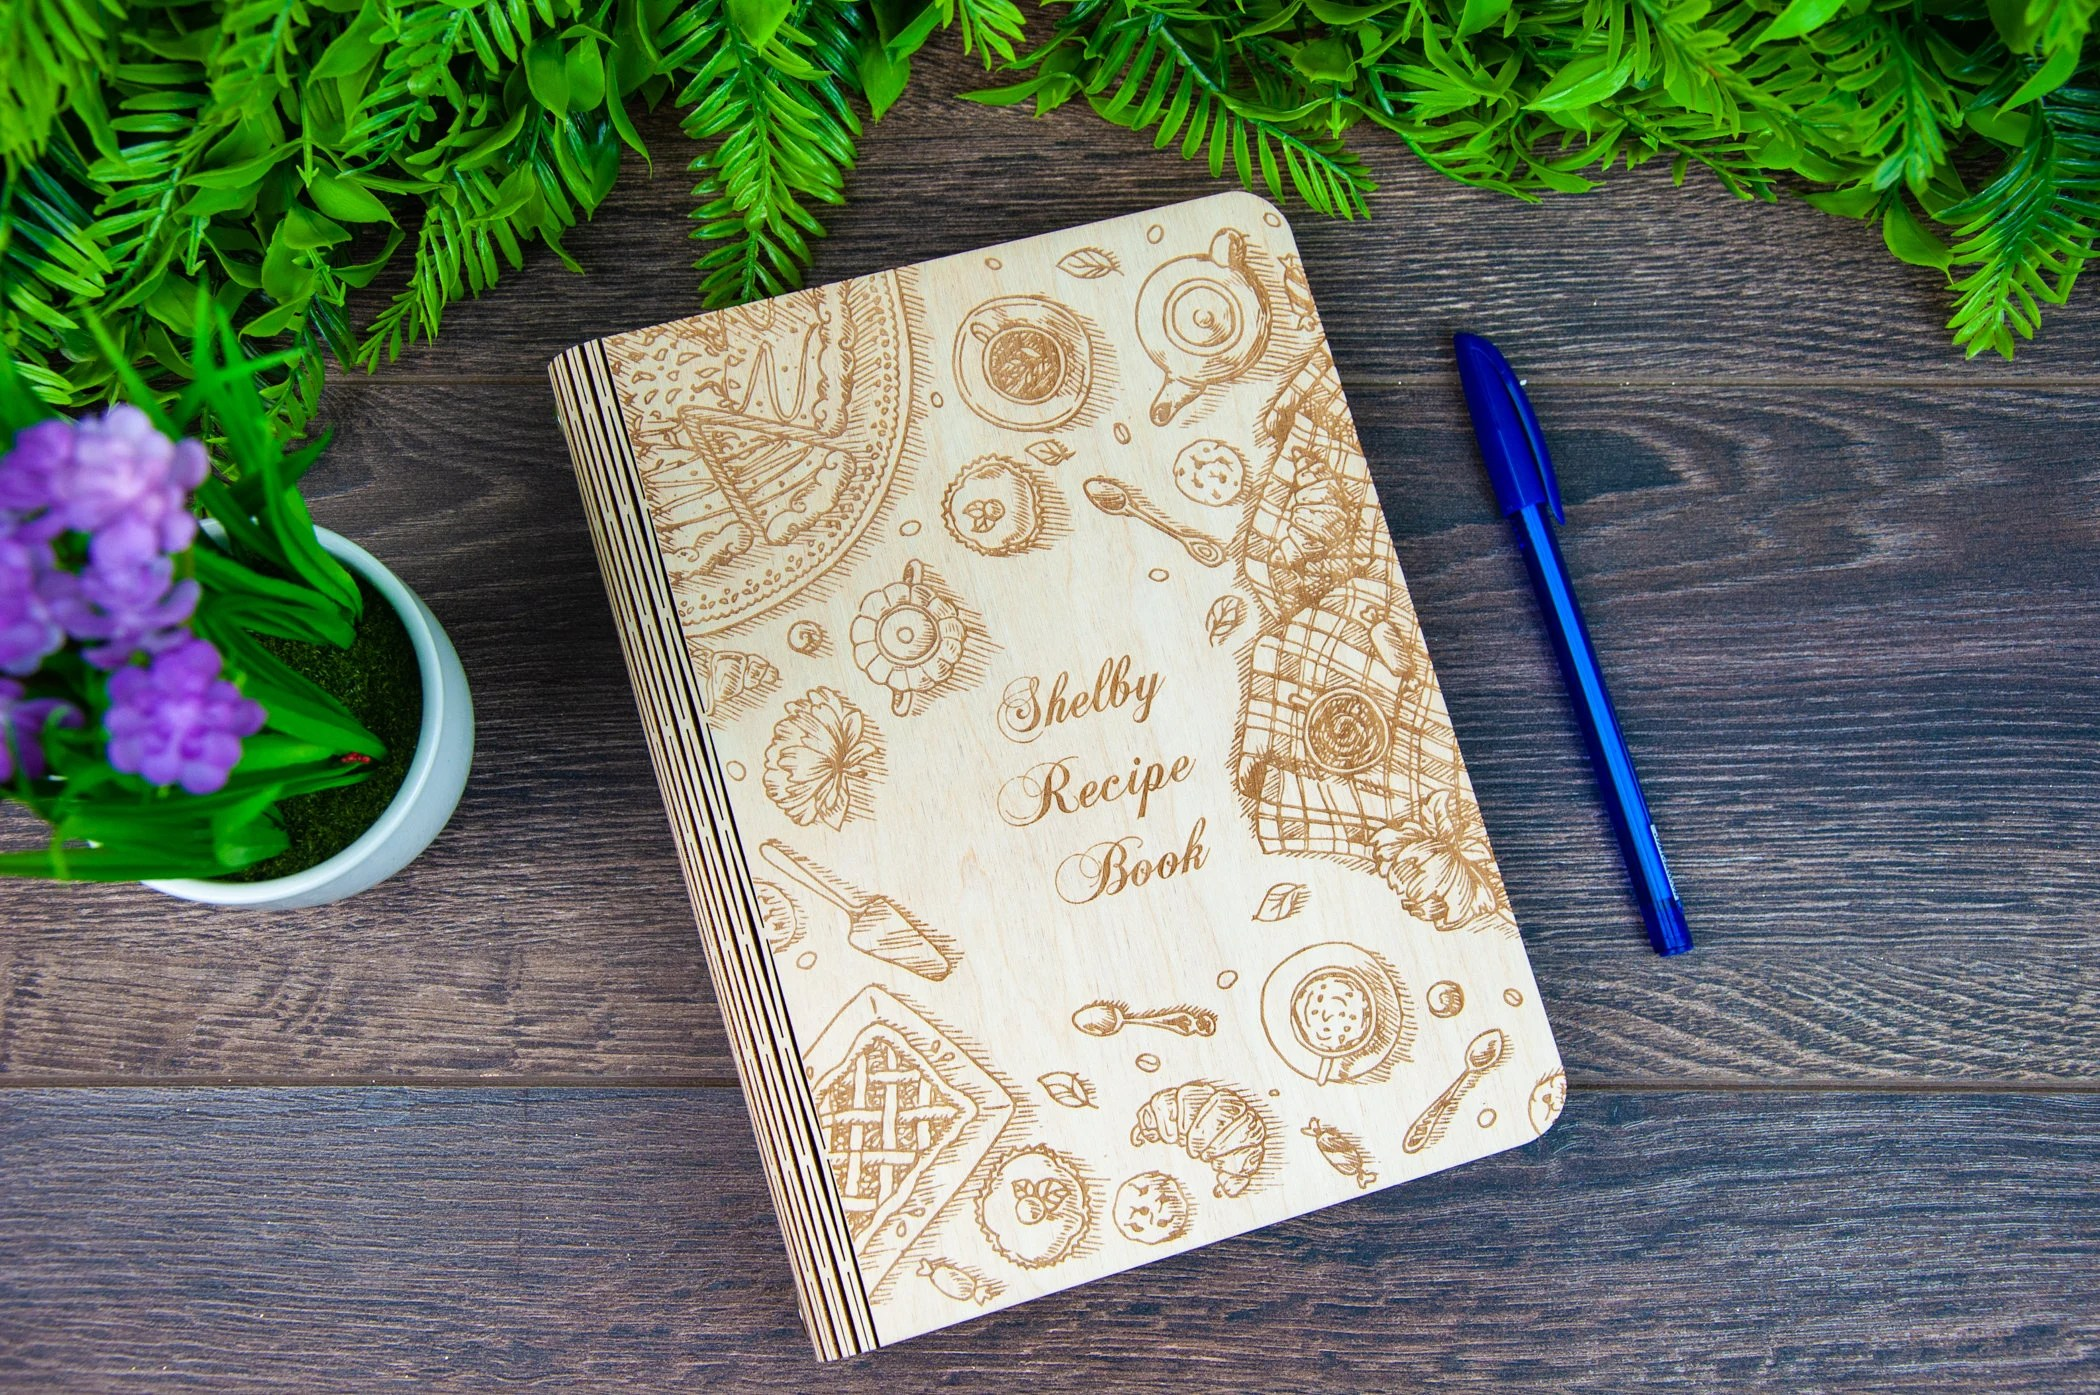 Personalized Wooden Recipe Book Binder Custom Journal Cookbook image 7